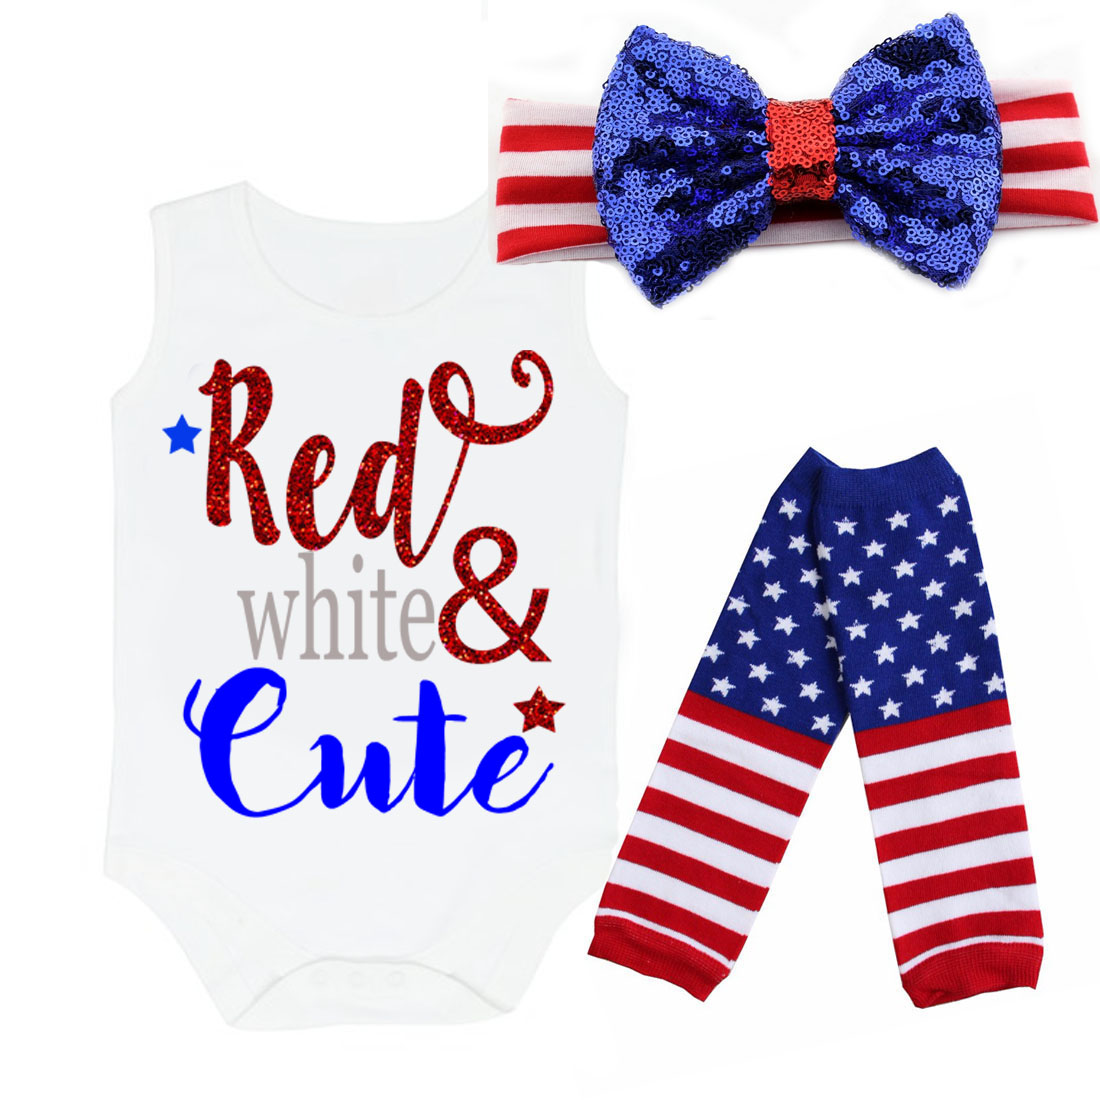 Red, White and Cute 4th of July Patriotic Outfits For Baby ...